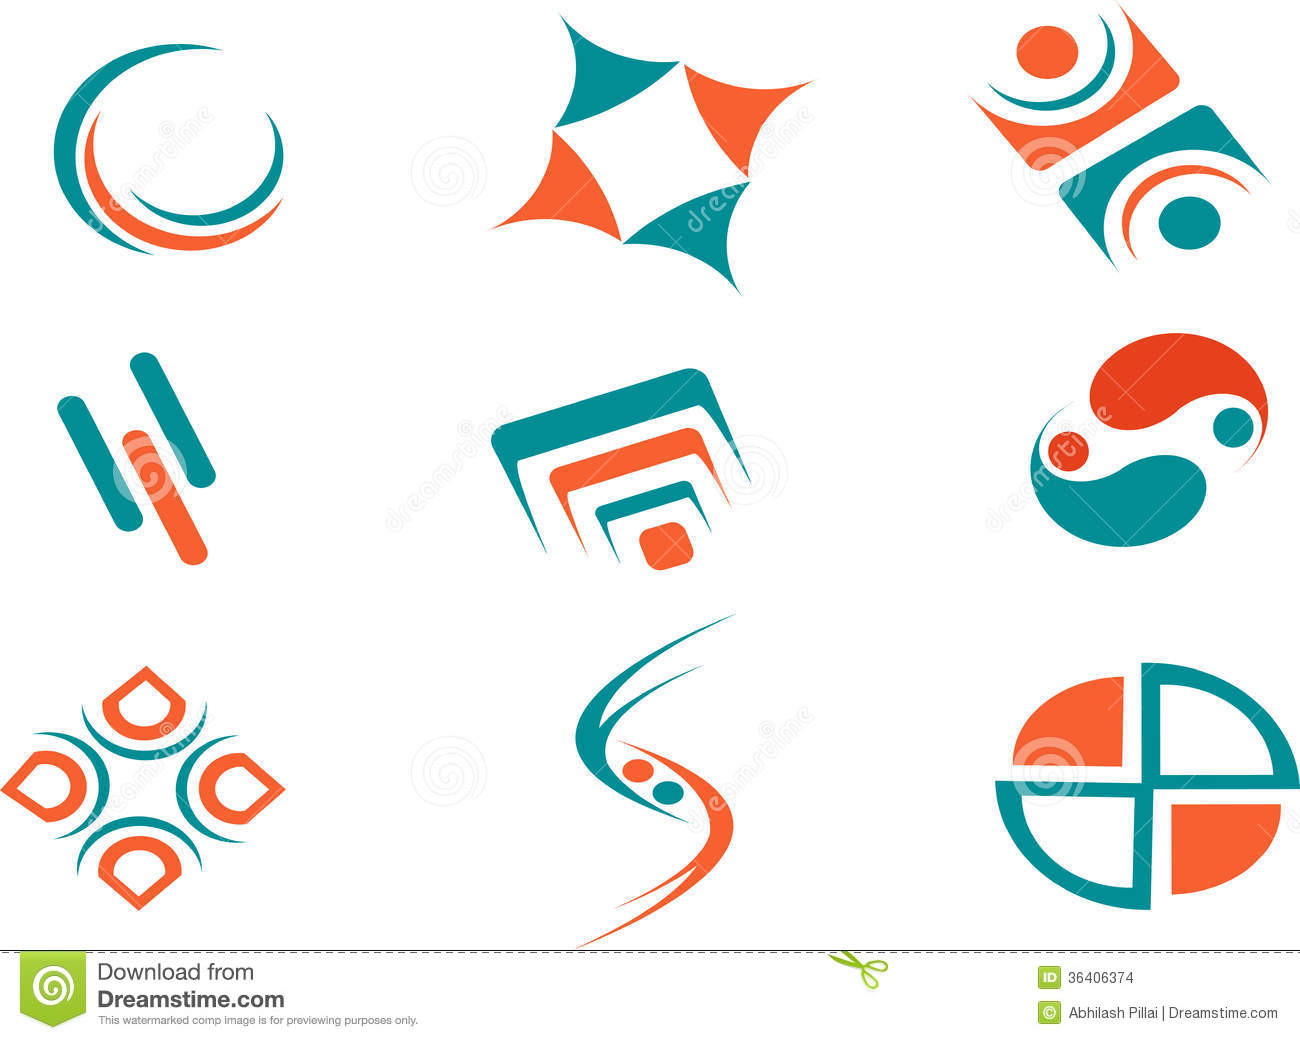 Publicidad Imagenes Abstractas: Abstract Logos For Websites Stock Images